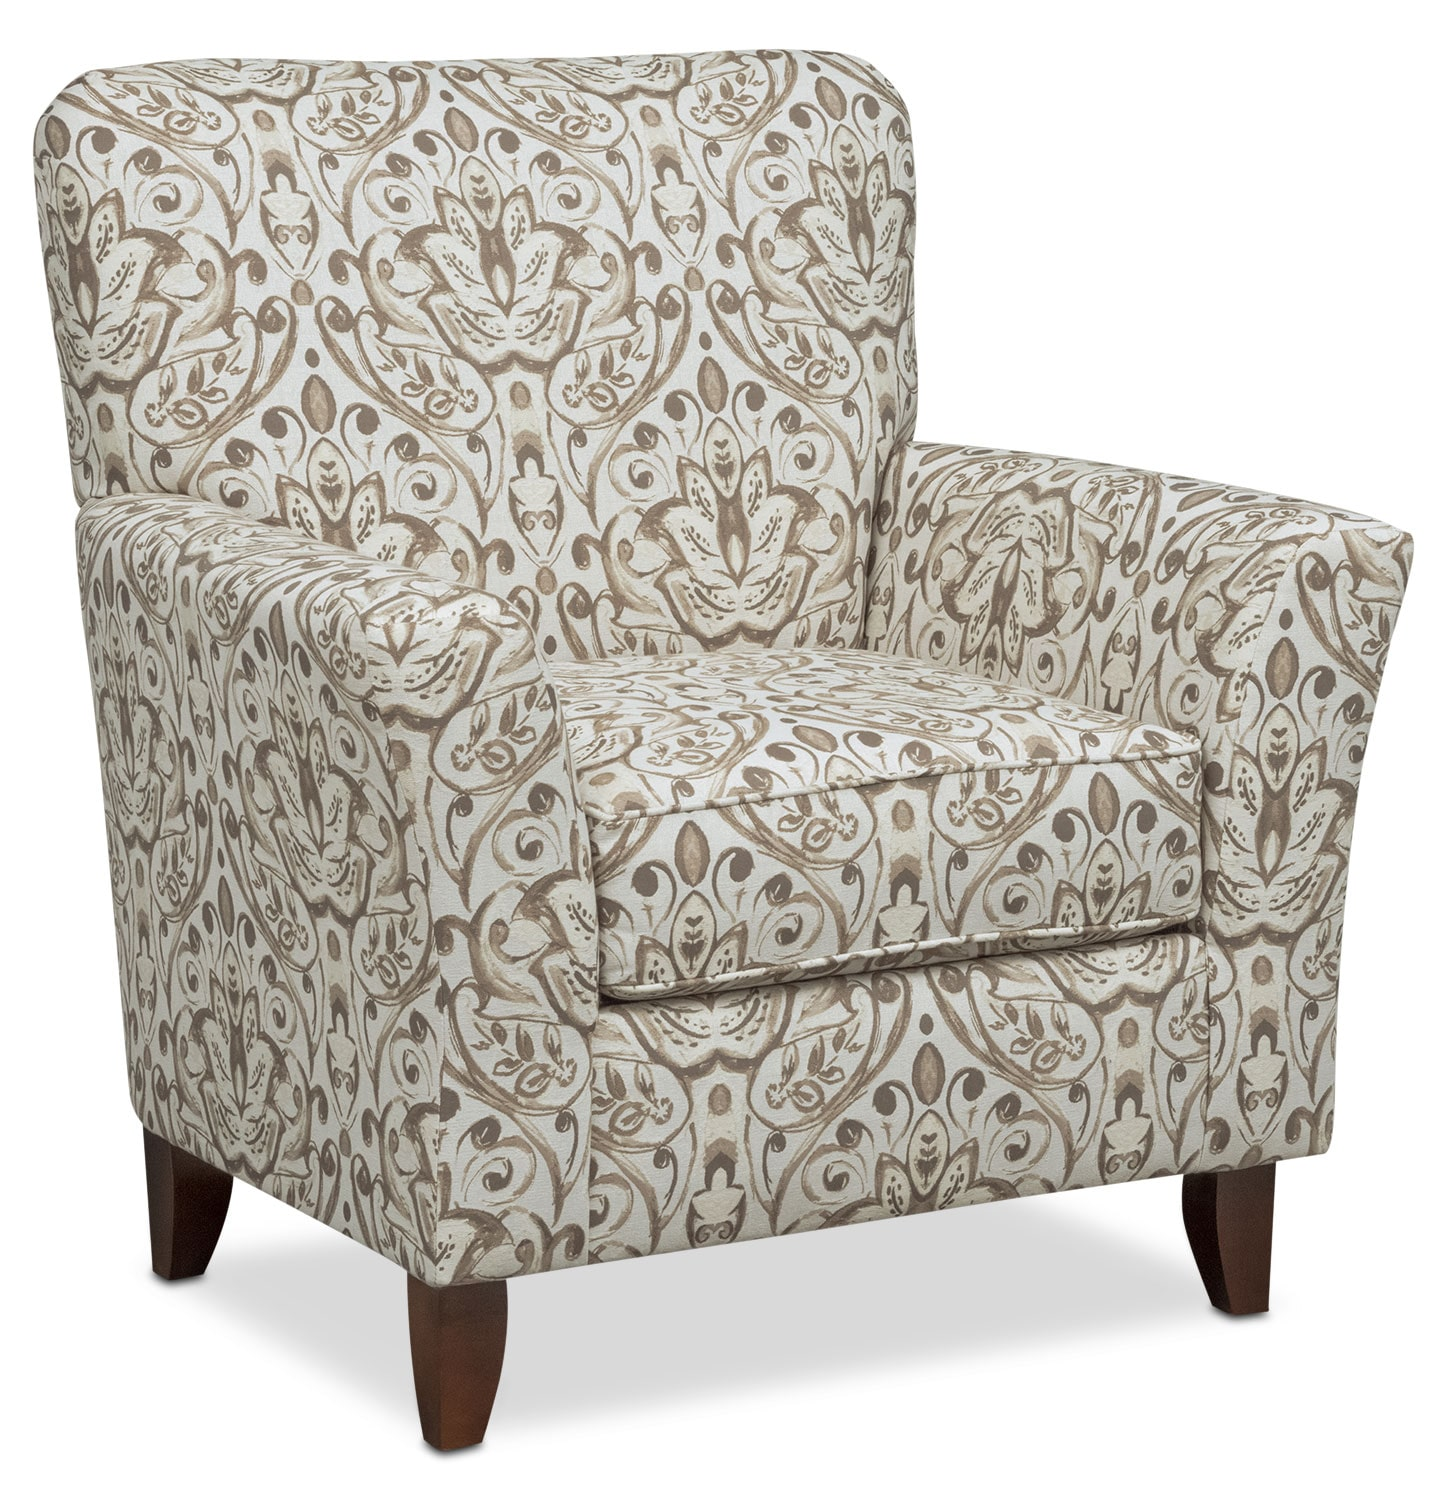 Mckenna Accent Chair - Sand